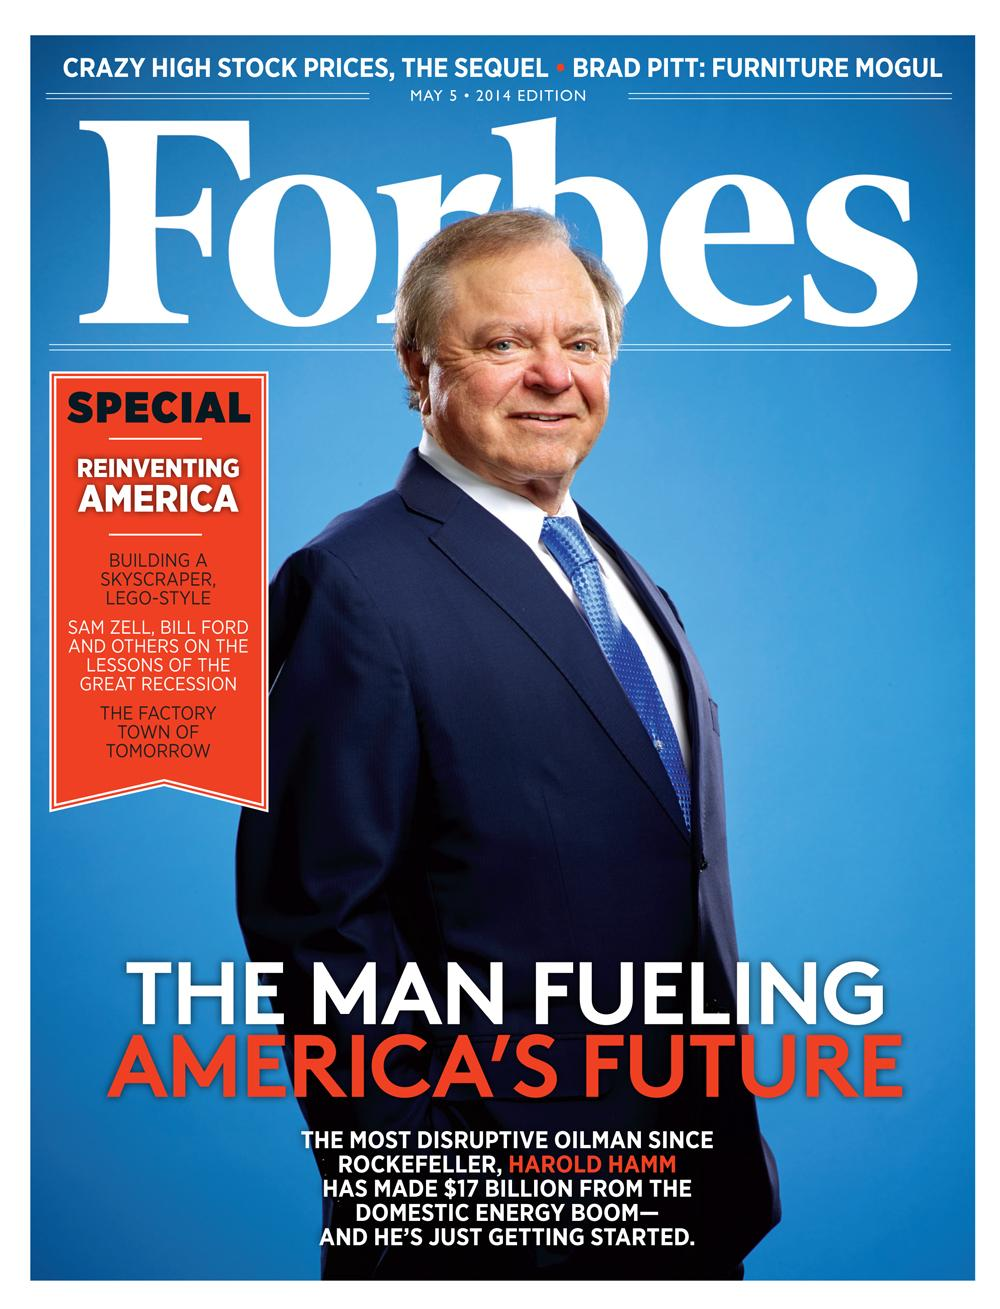 Inside The Issue: Reinventing America